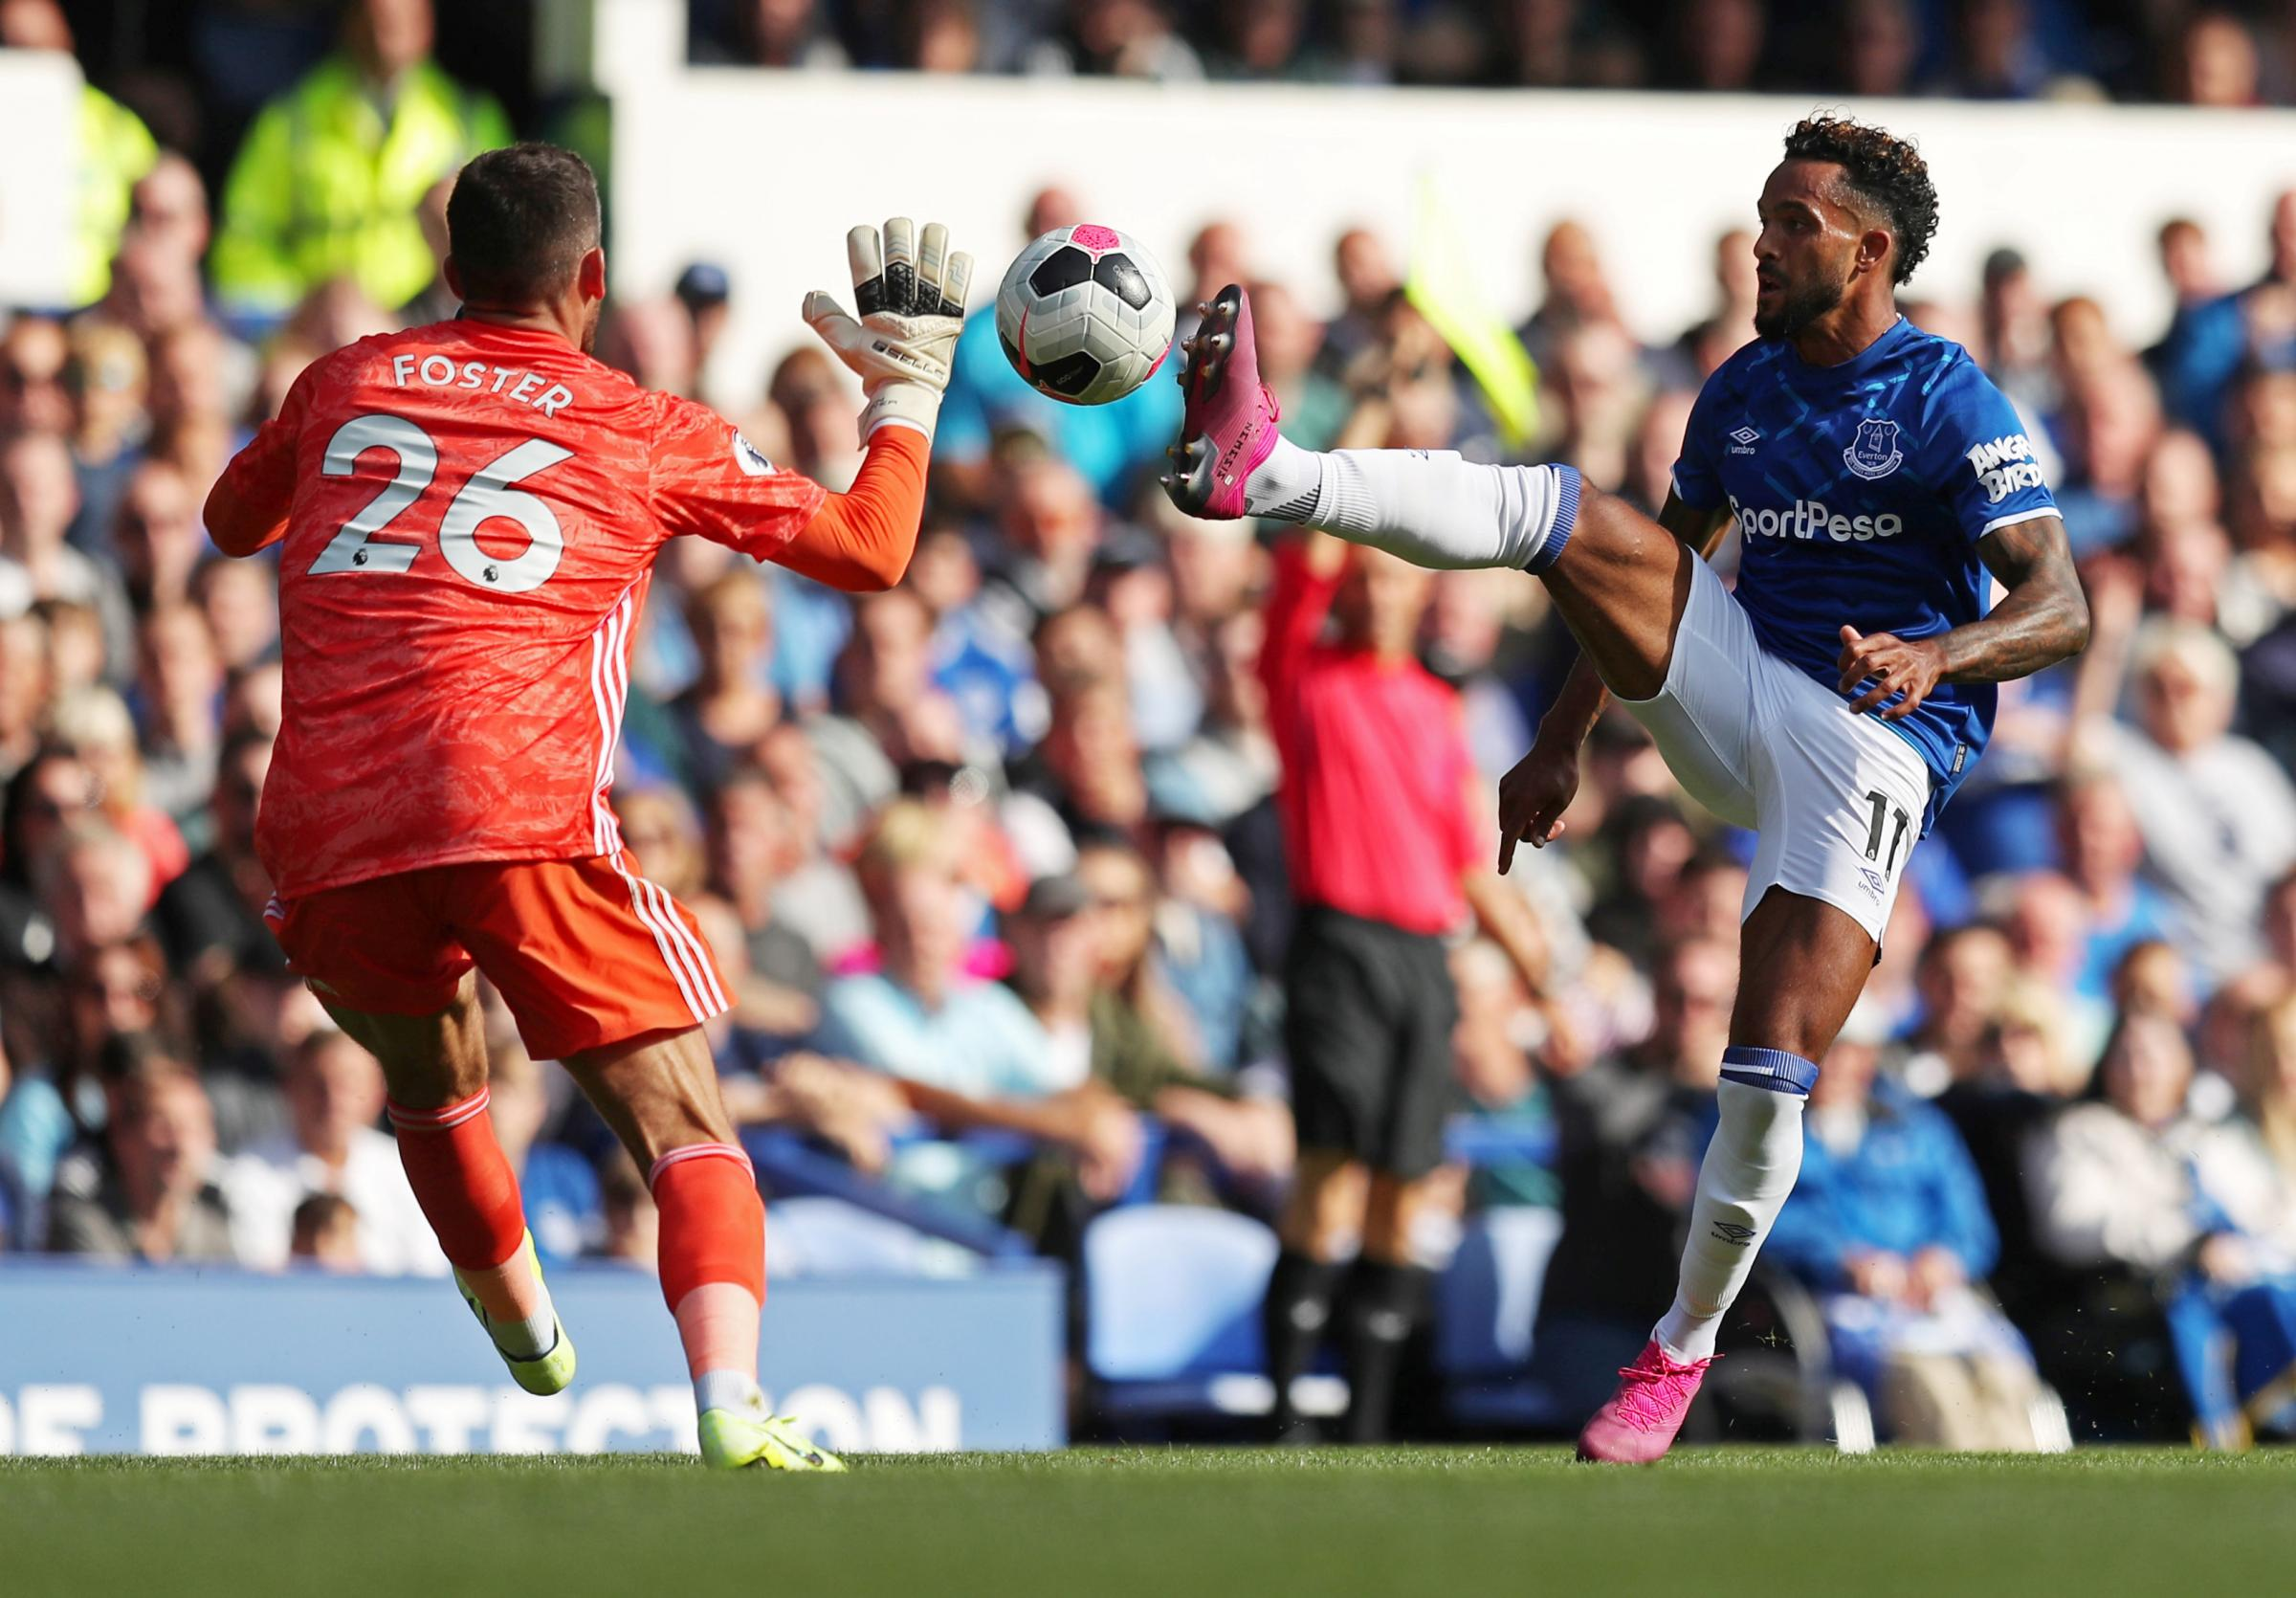 Ben Foster knows Watford need to start scoring after Everton loss